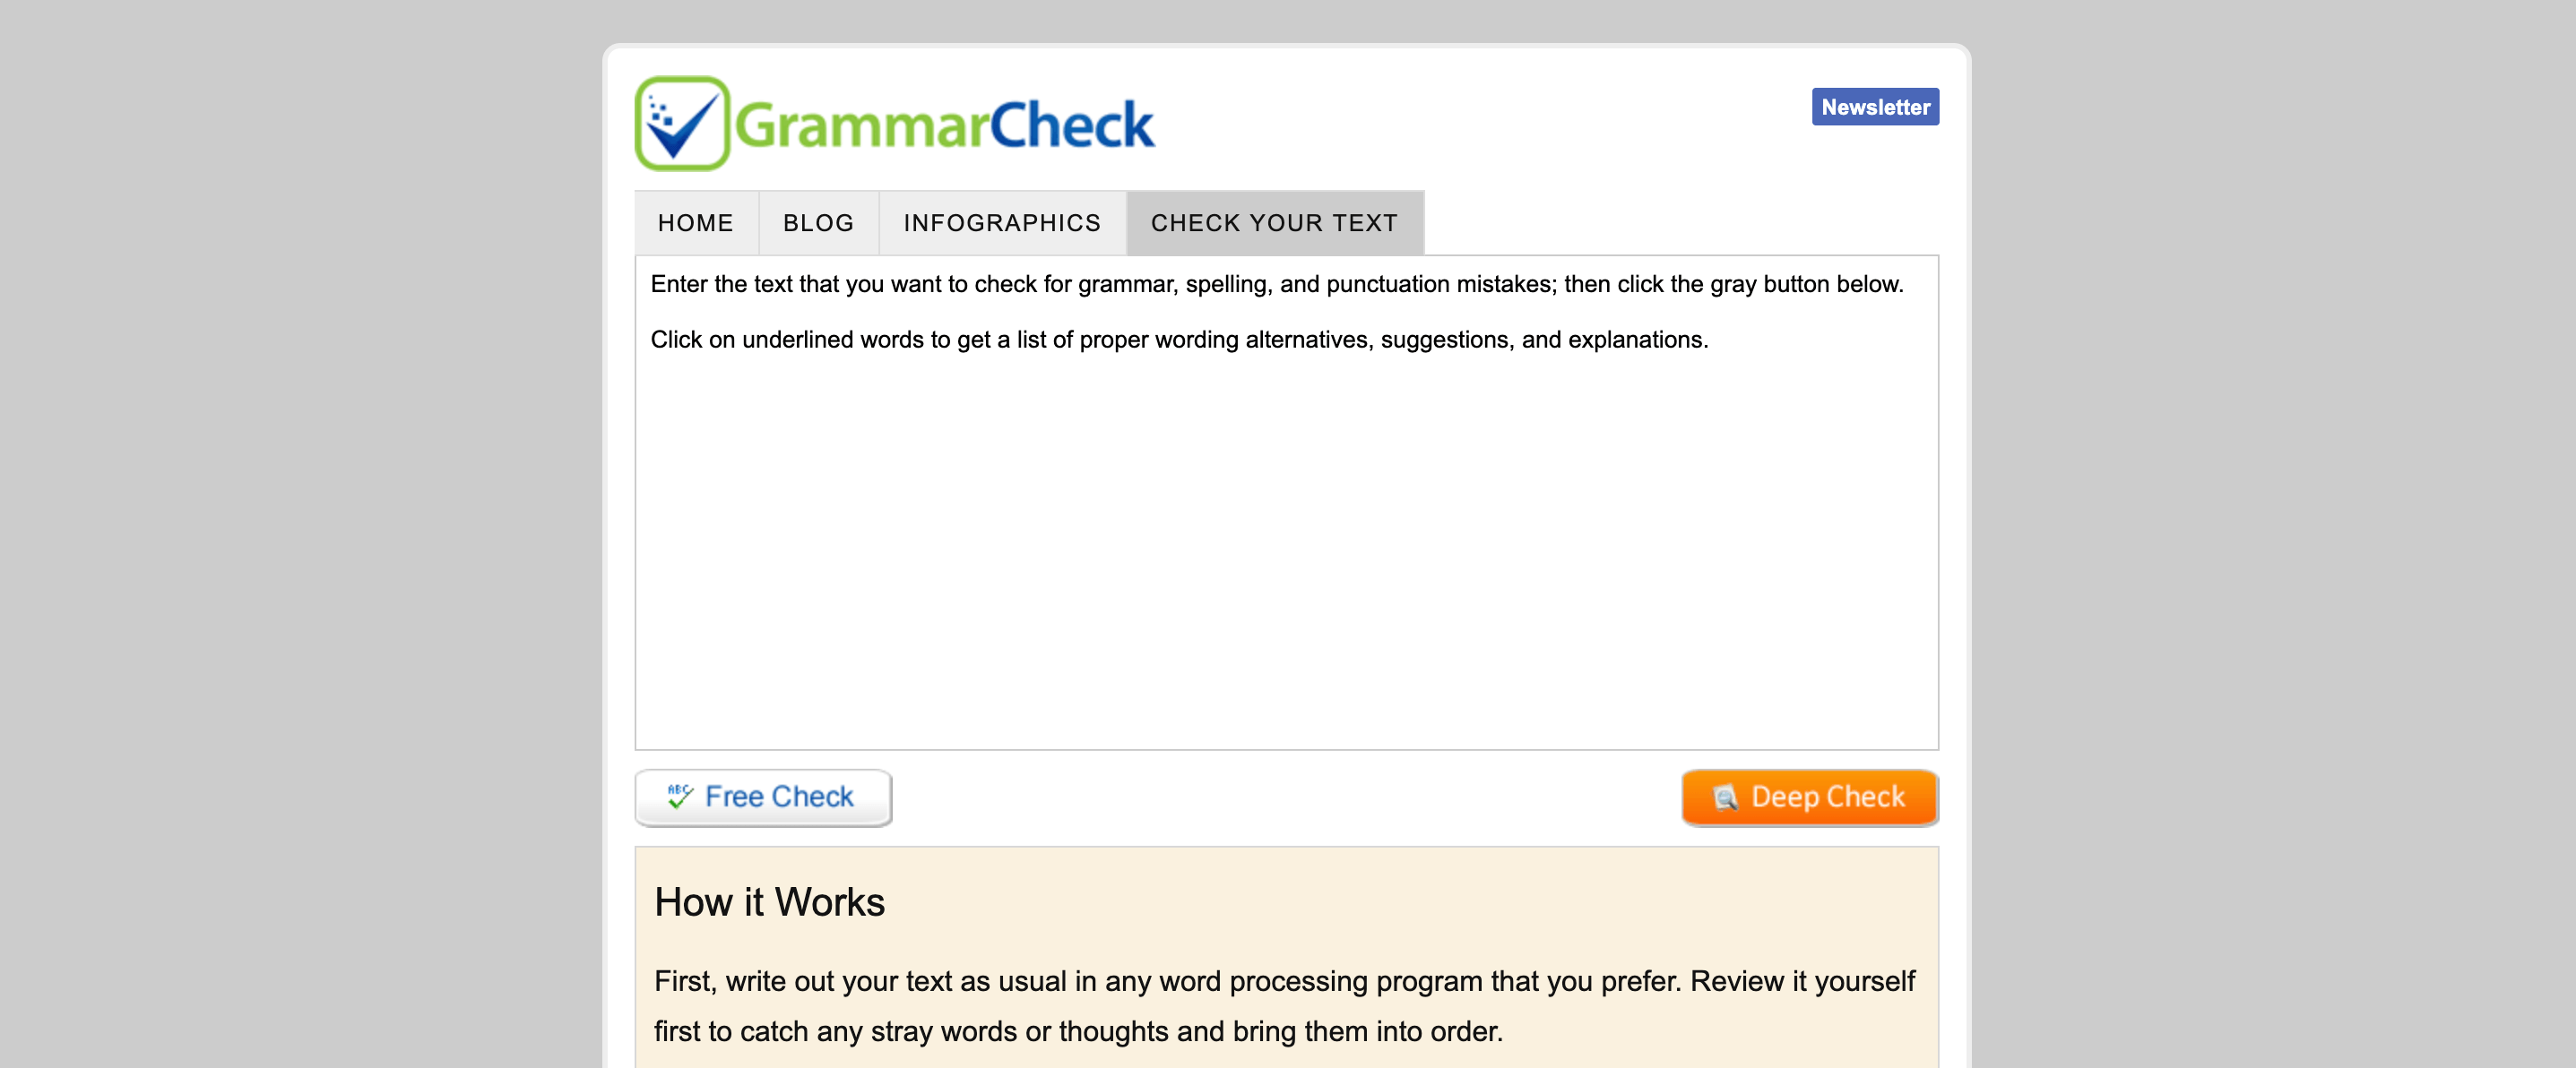 best grammar checker, best grammar checker software, best grammar checker tools, grammar checker software, grammar checker tools